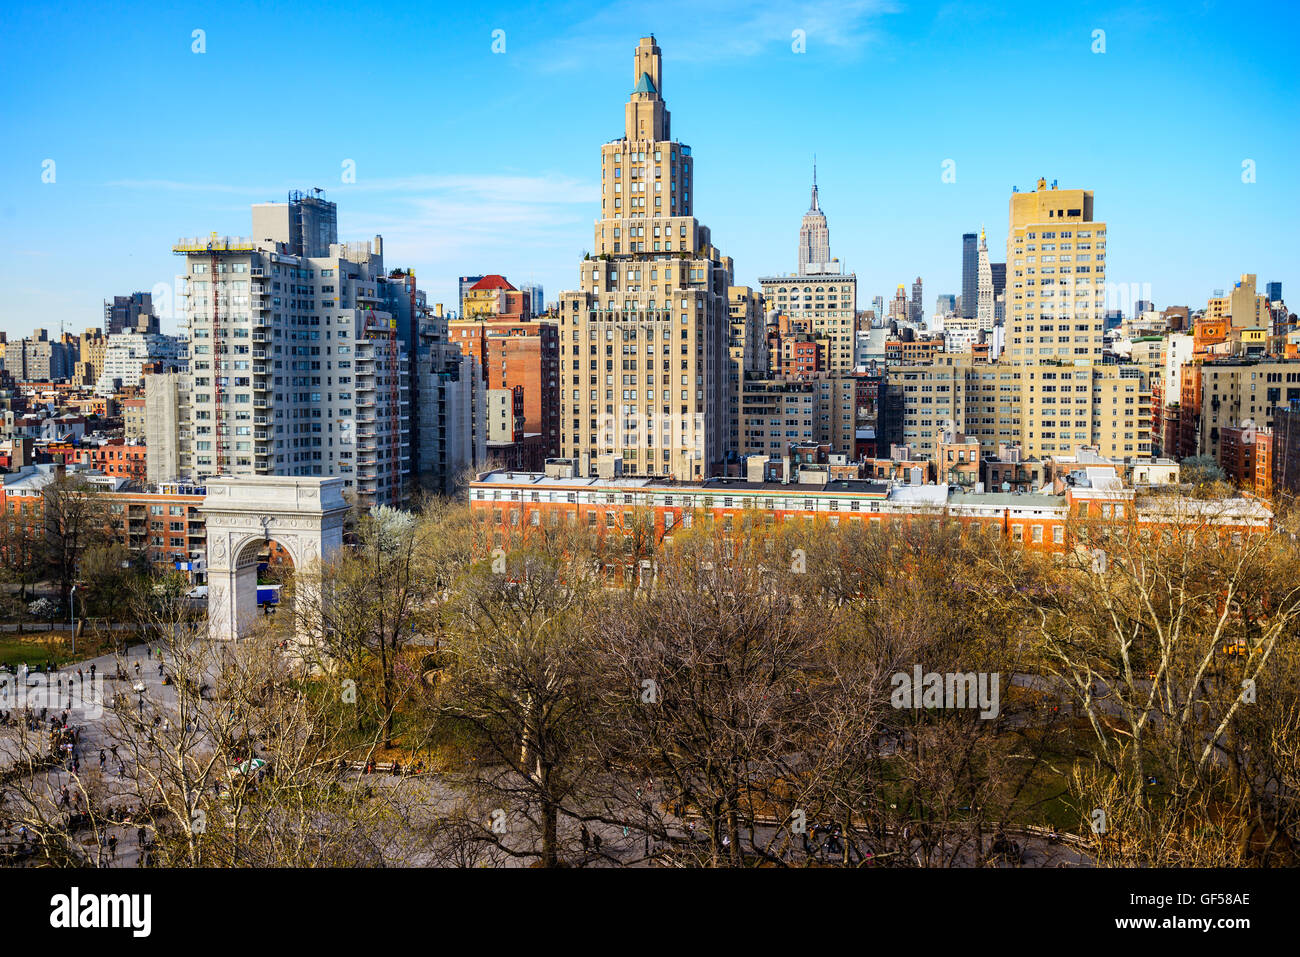 Washington Square Park und Greenwich Village Stadtbild in New York City. Stockbild